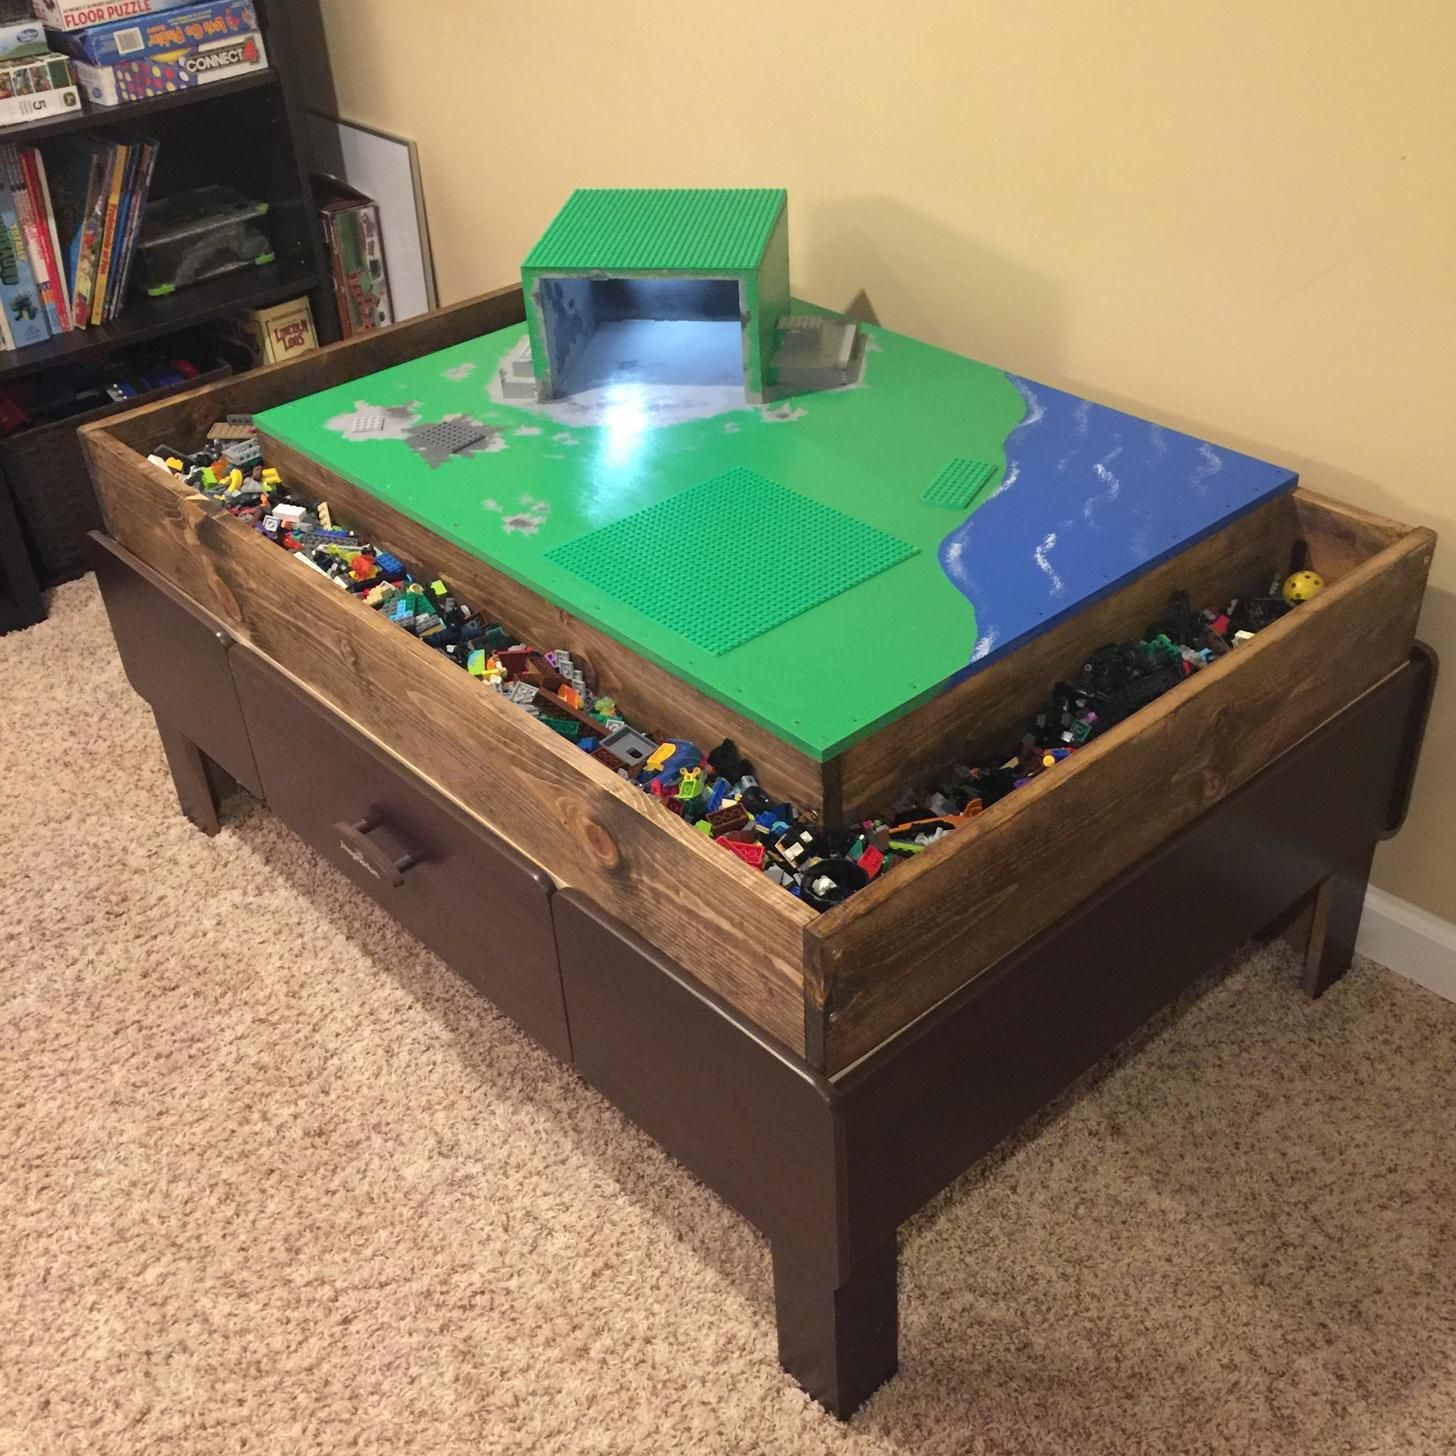 Train Table To Lego Table Conversion Lego Table Lego Table Diy